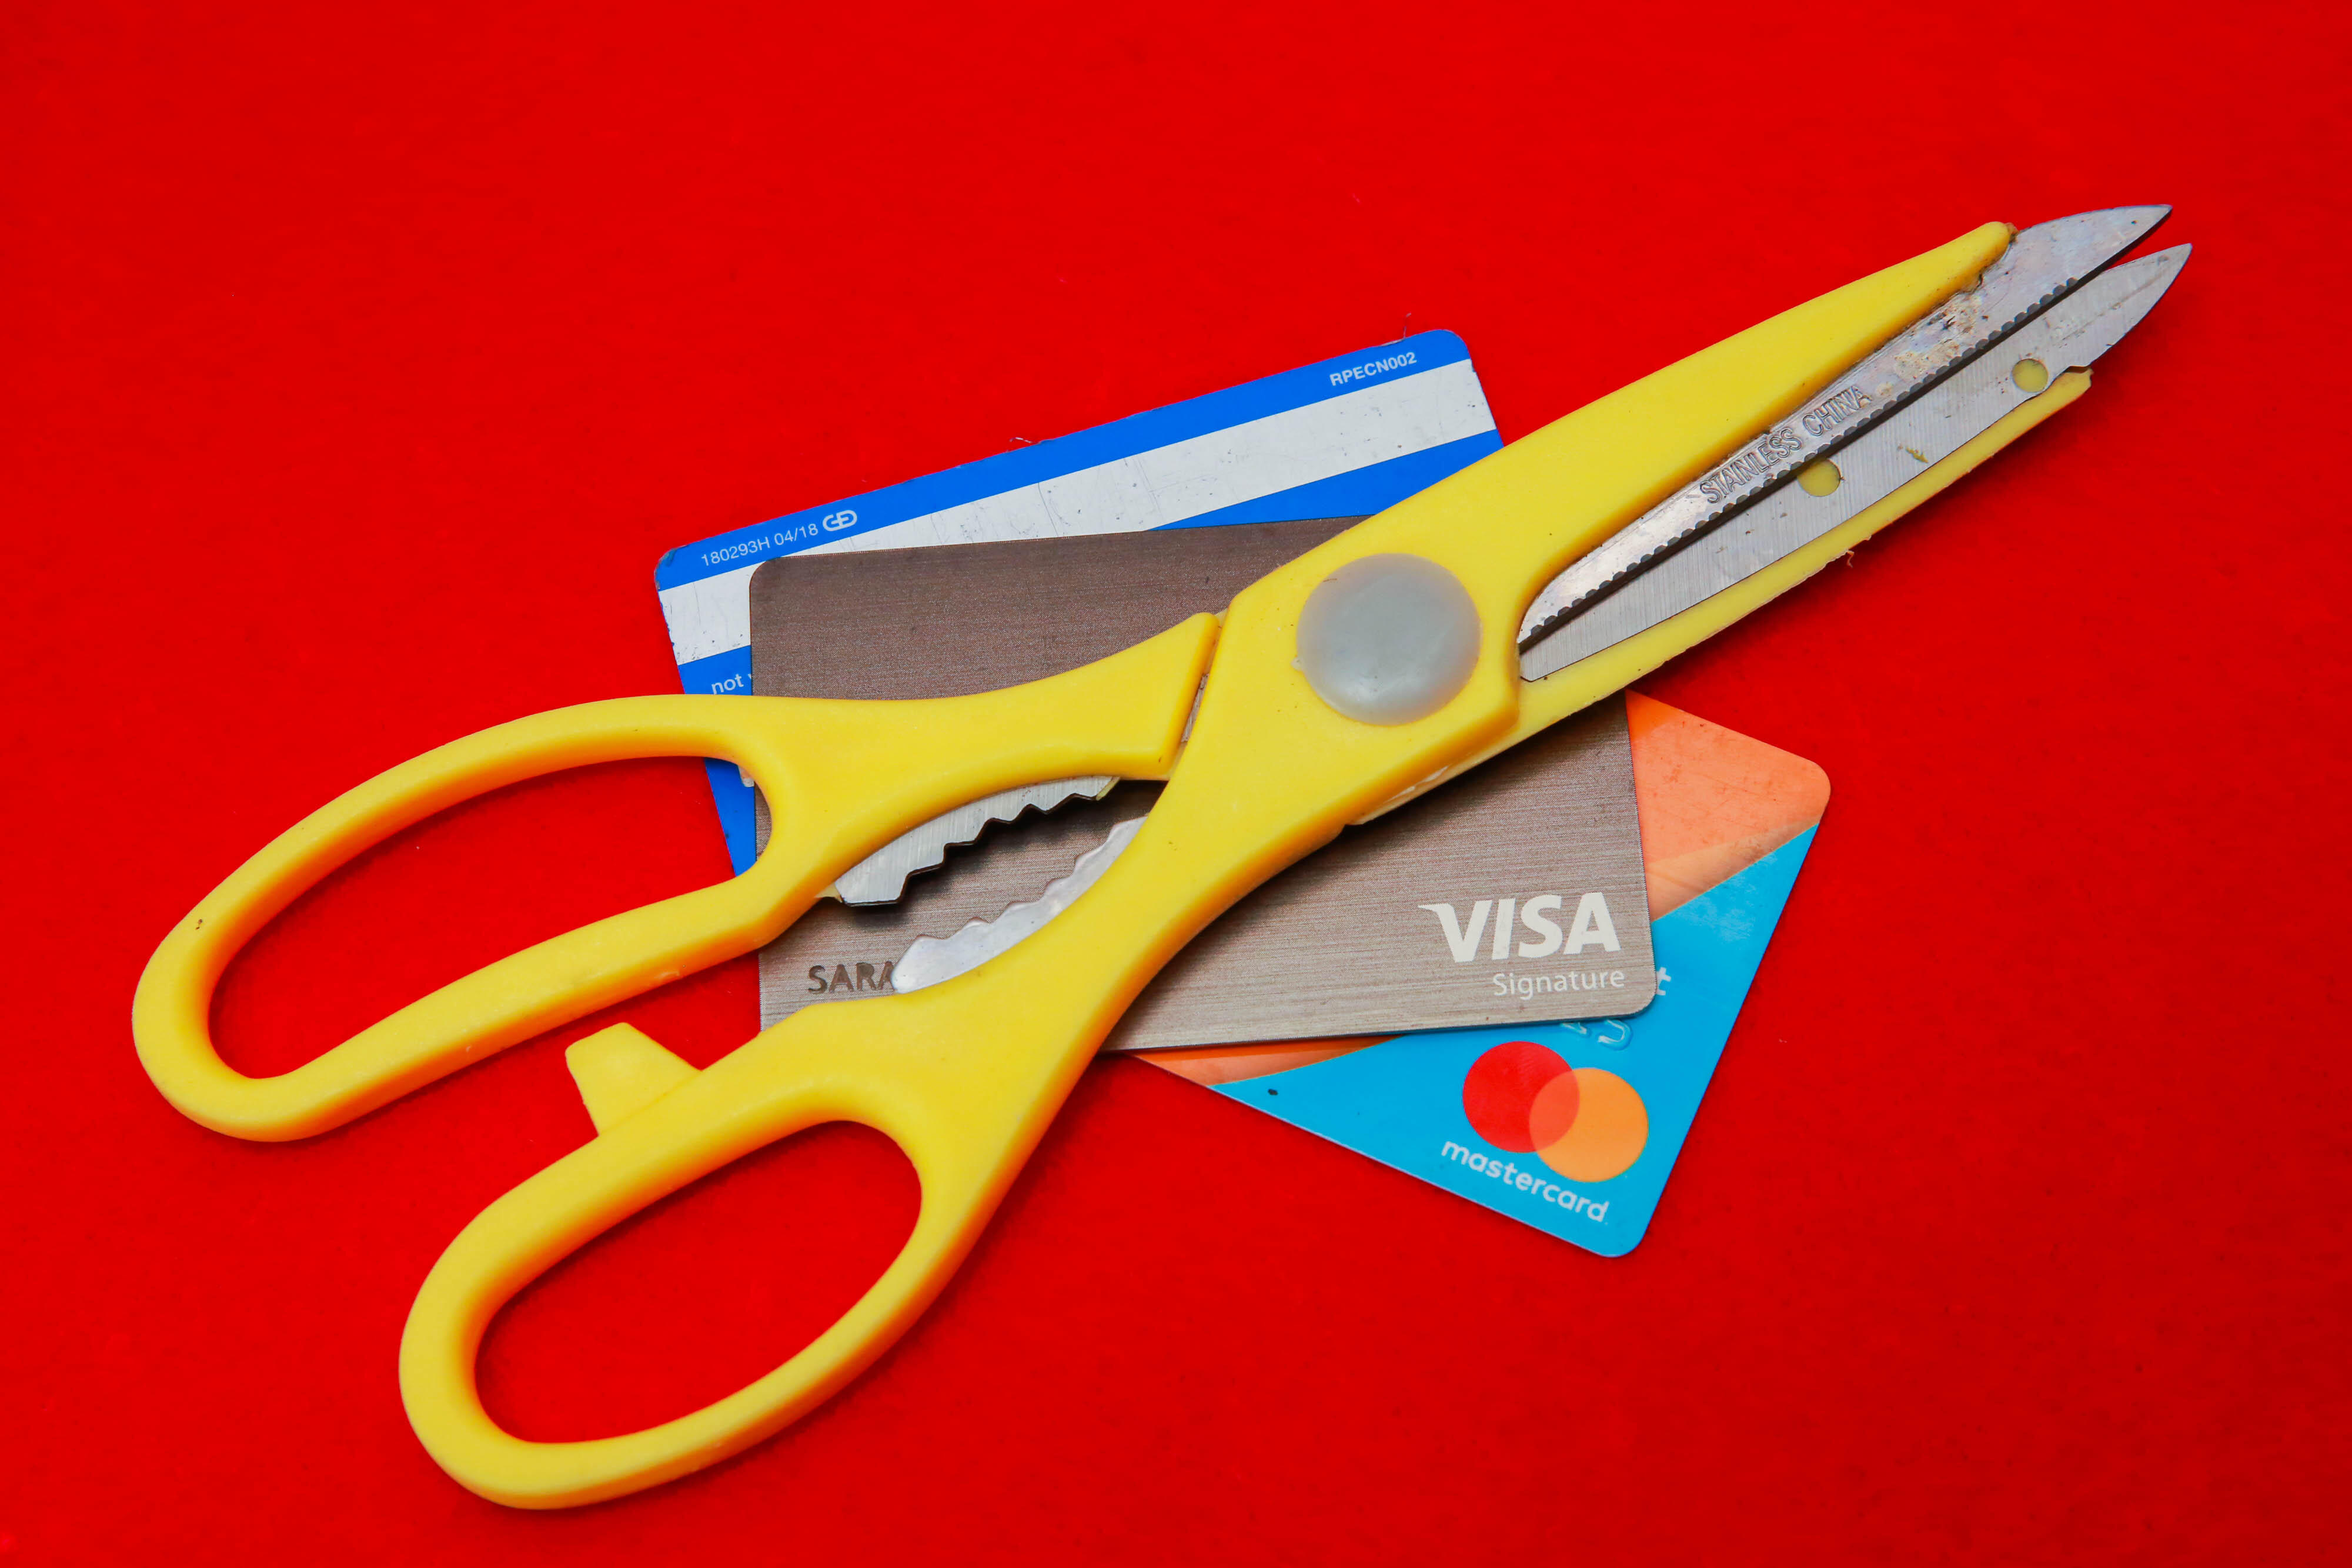 002-cutting-up-credit-cards-debt-cash-money-stimulus-debt-2